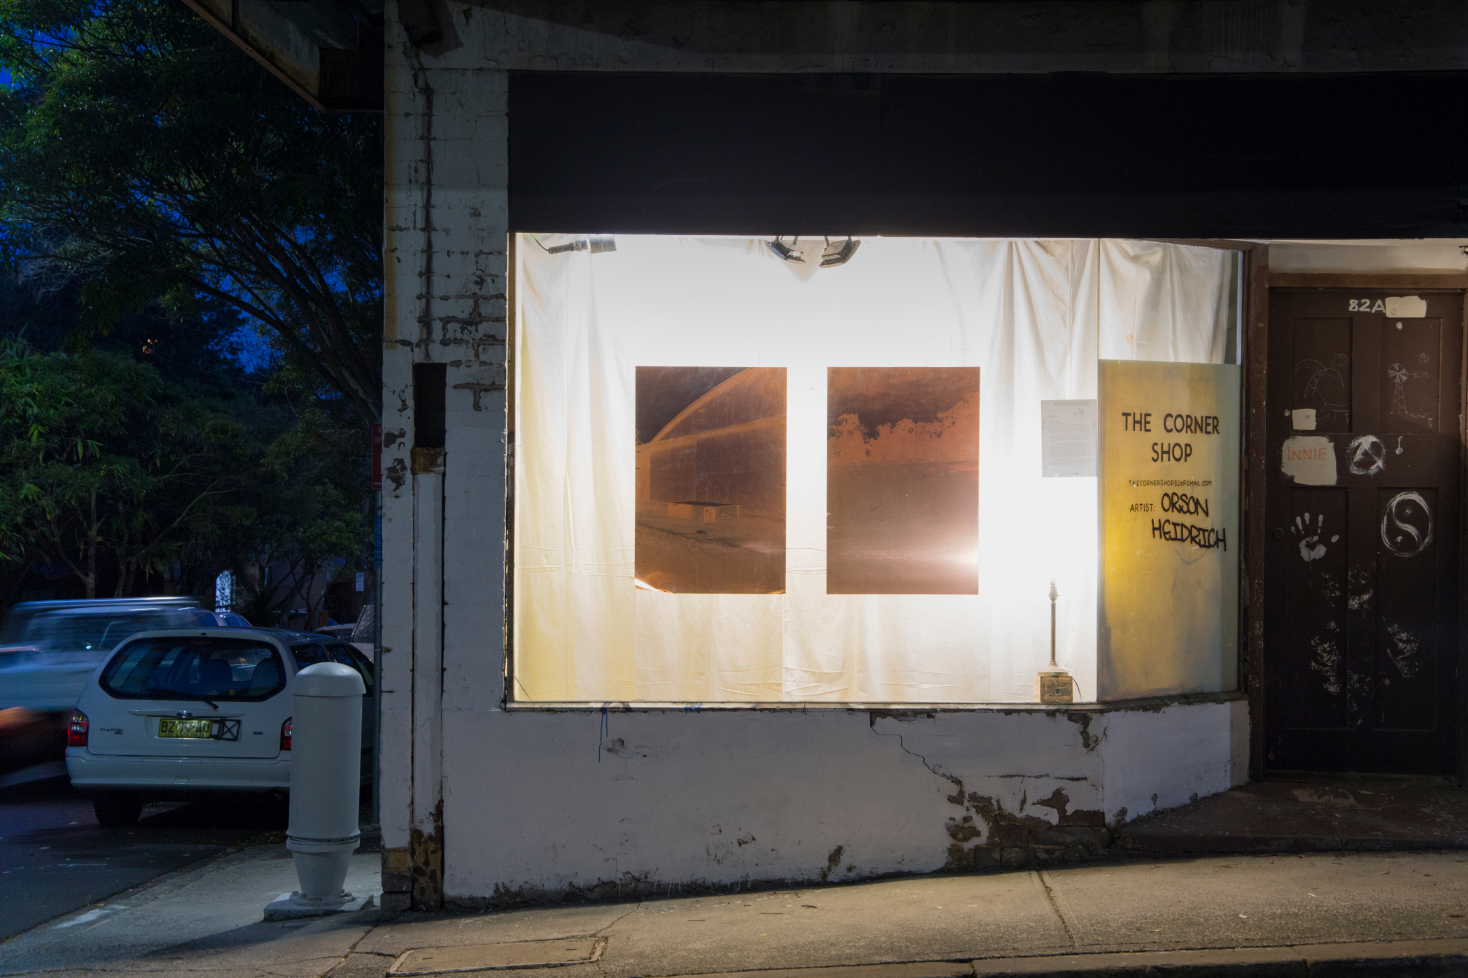 <p><i>Camér</i>, 2018, UV Pigment Prints on Copper Plates, 1800mm x 1100mm, installation view, The Corner Shop, Newtown 2018.</p>